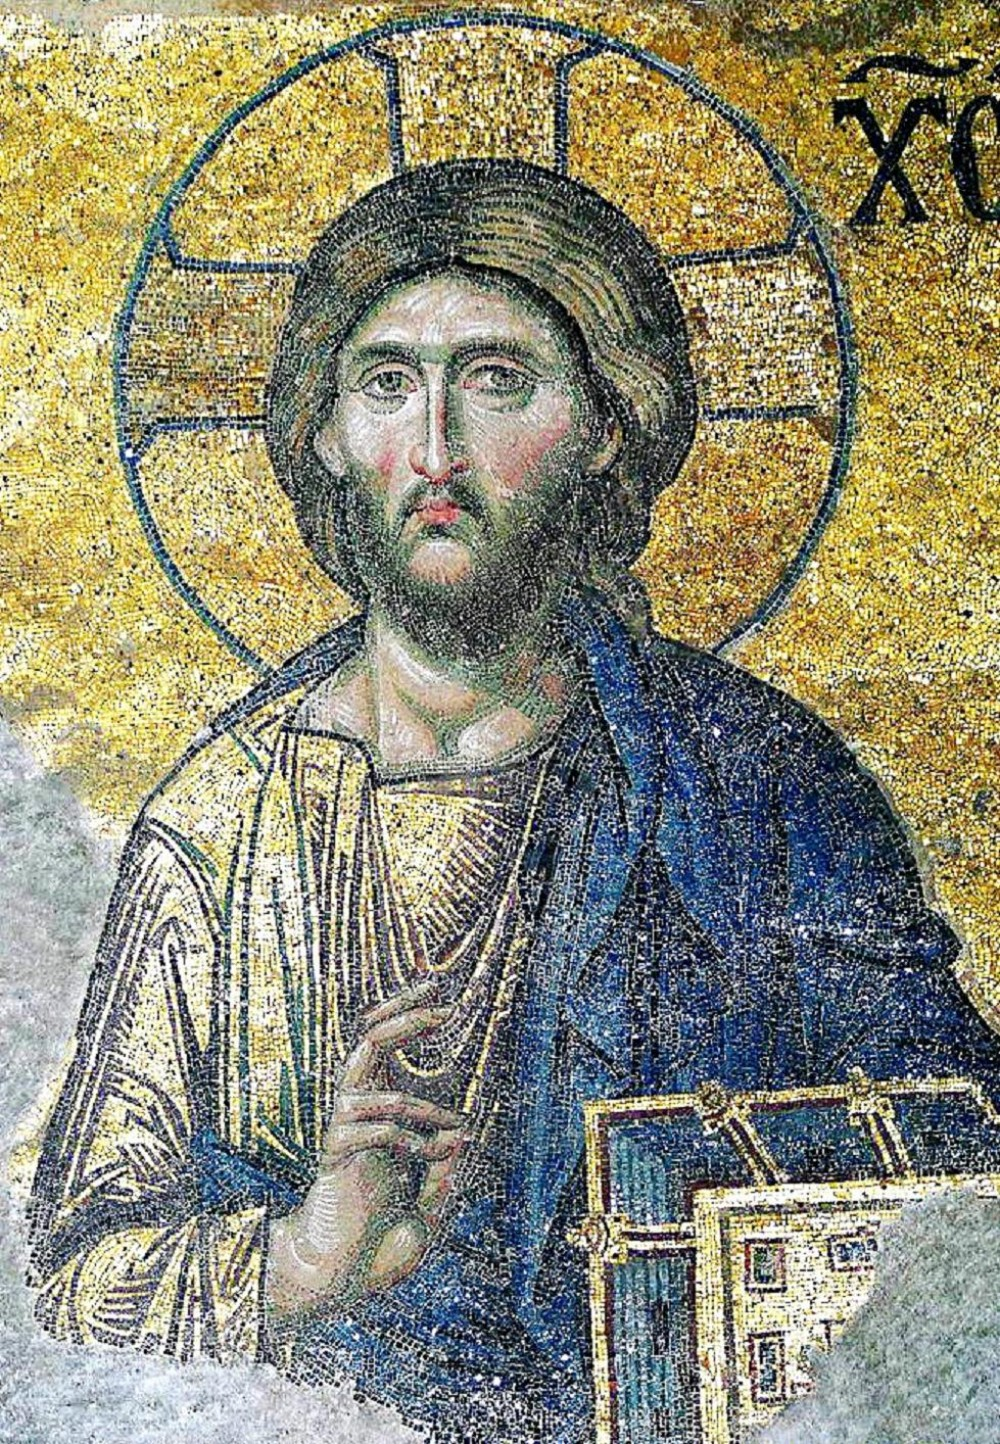 Unknown Artist. Christ Pantocrator. Deisis. Naos tis Agias tou Theou Sofias (Church of the Holy Wisdom of God). Istanbul (Turkey). 1261